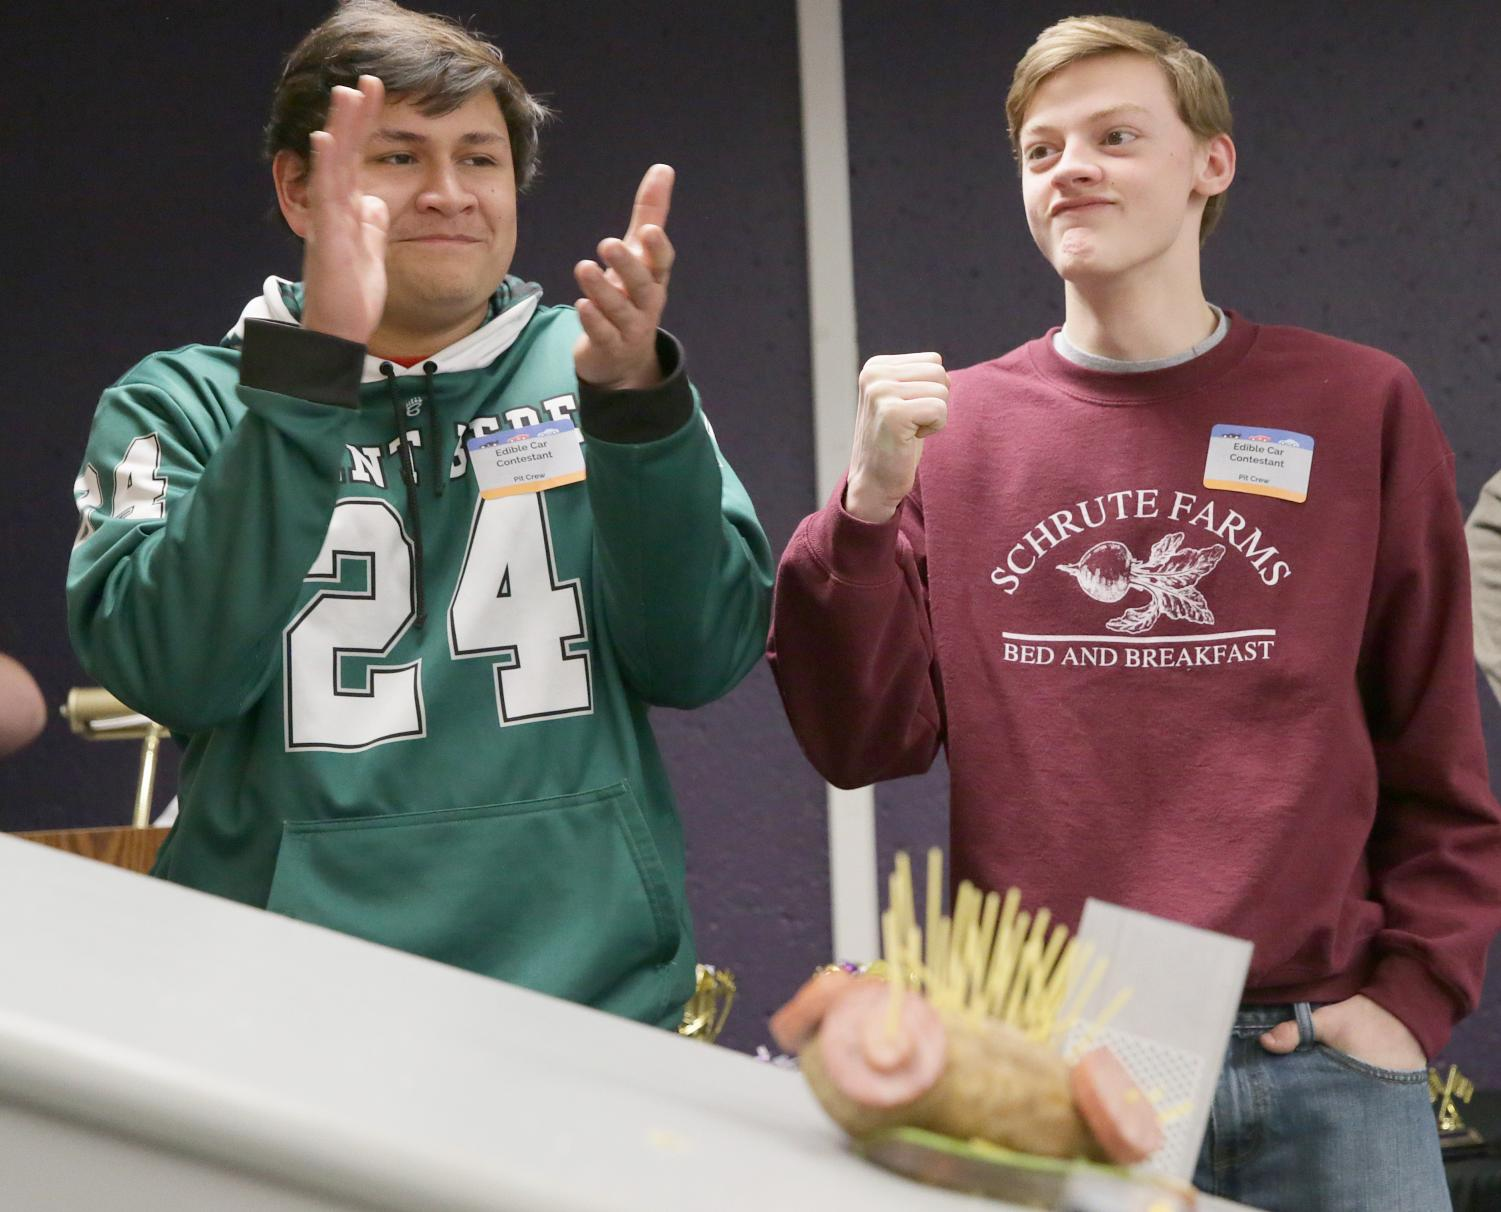 Two students from St. Bede are enjoying the edible car contest